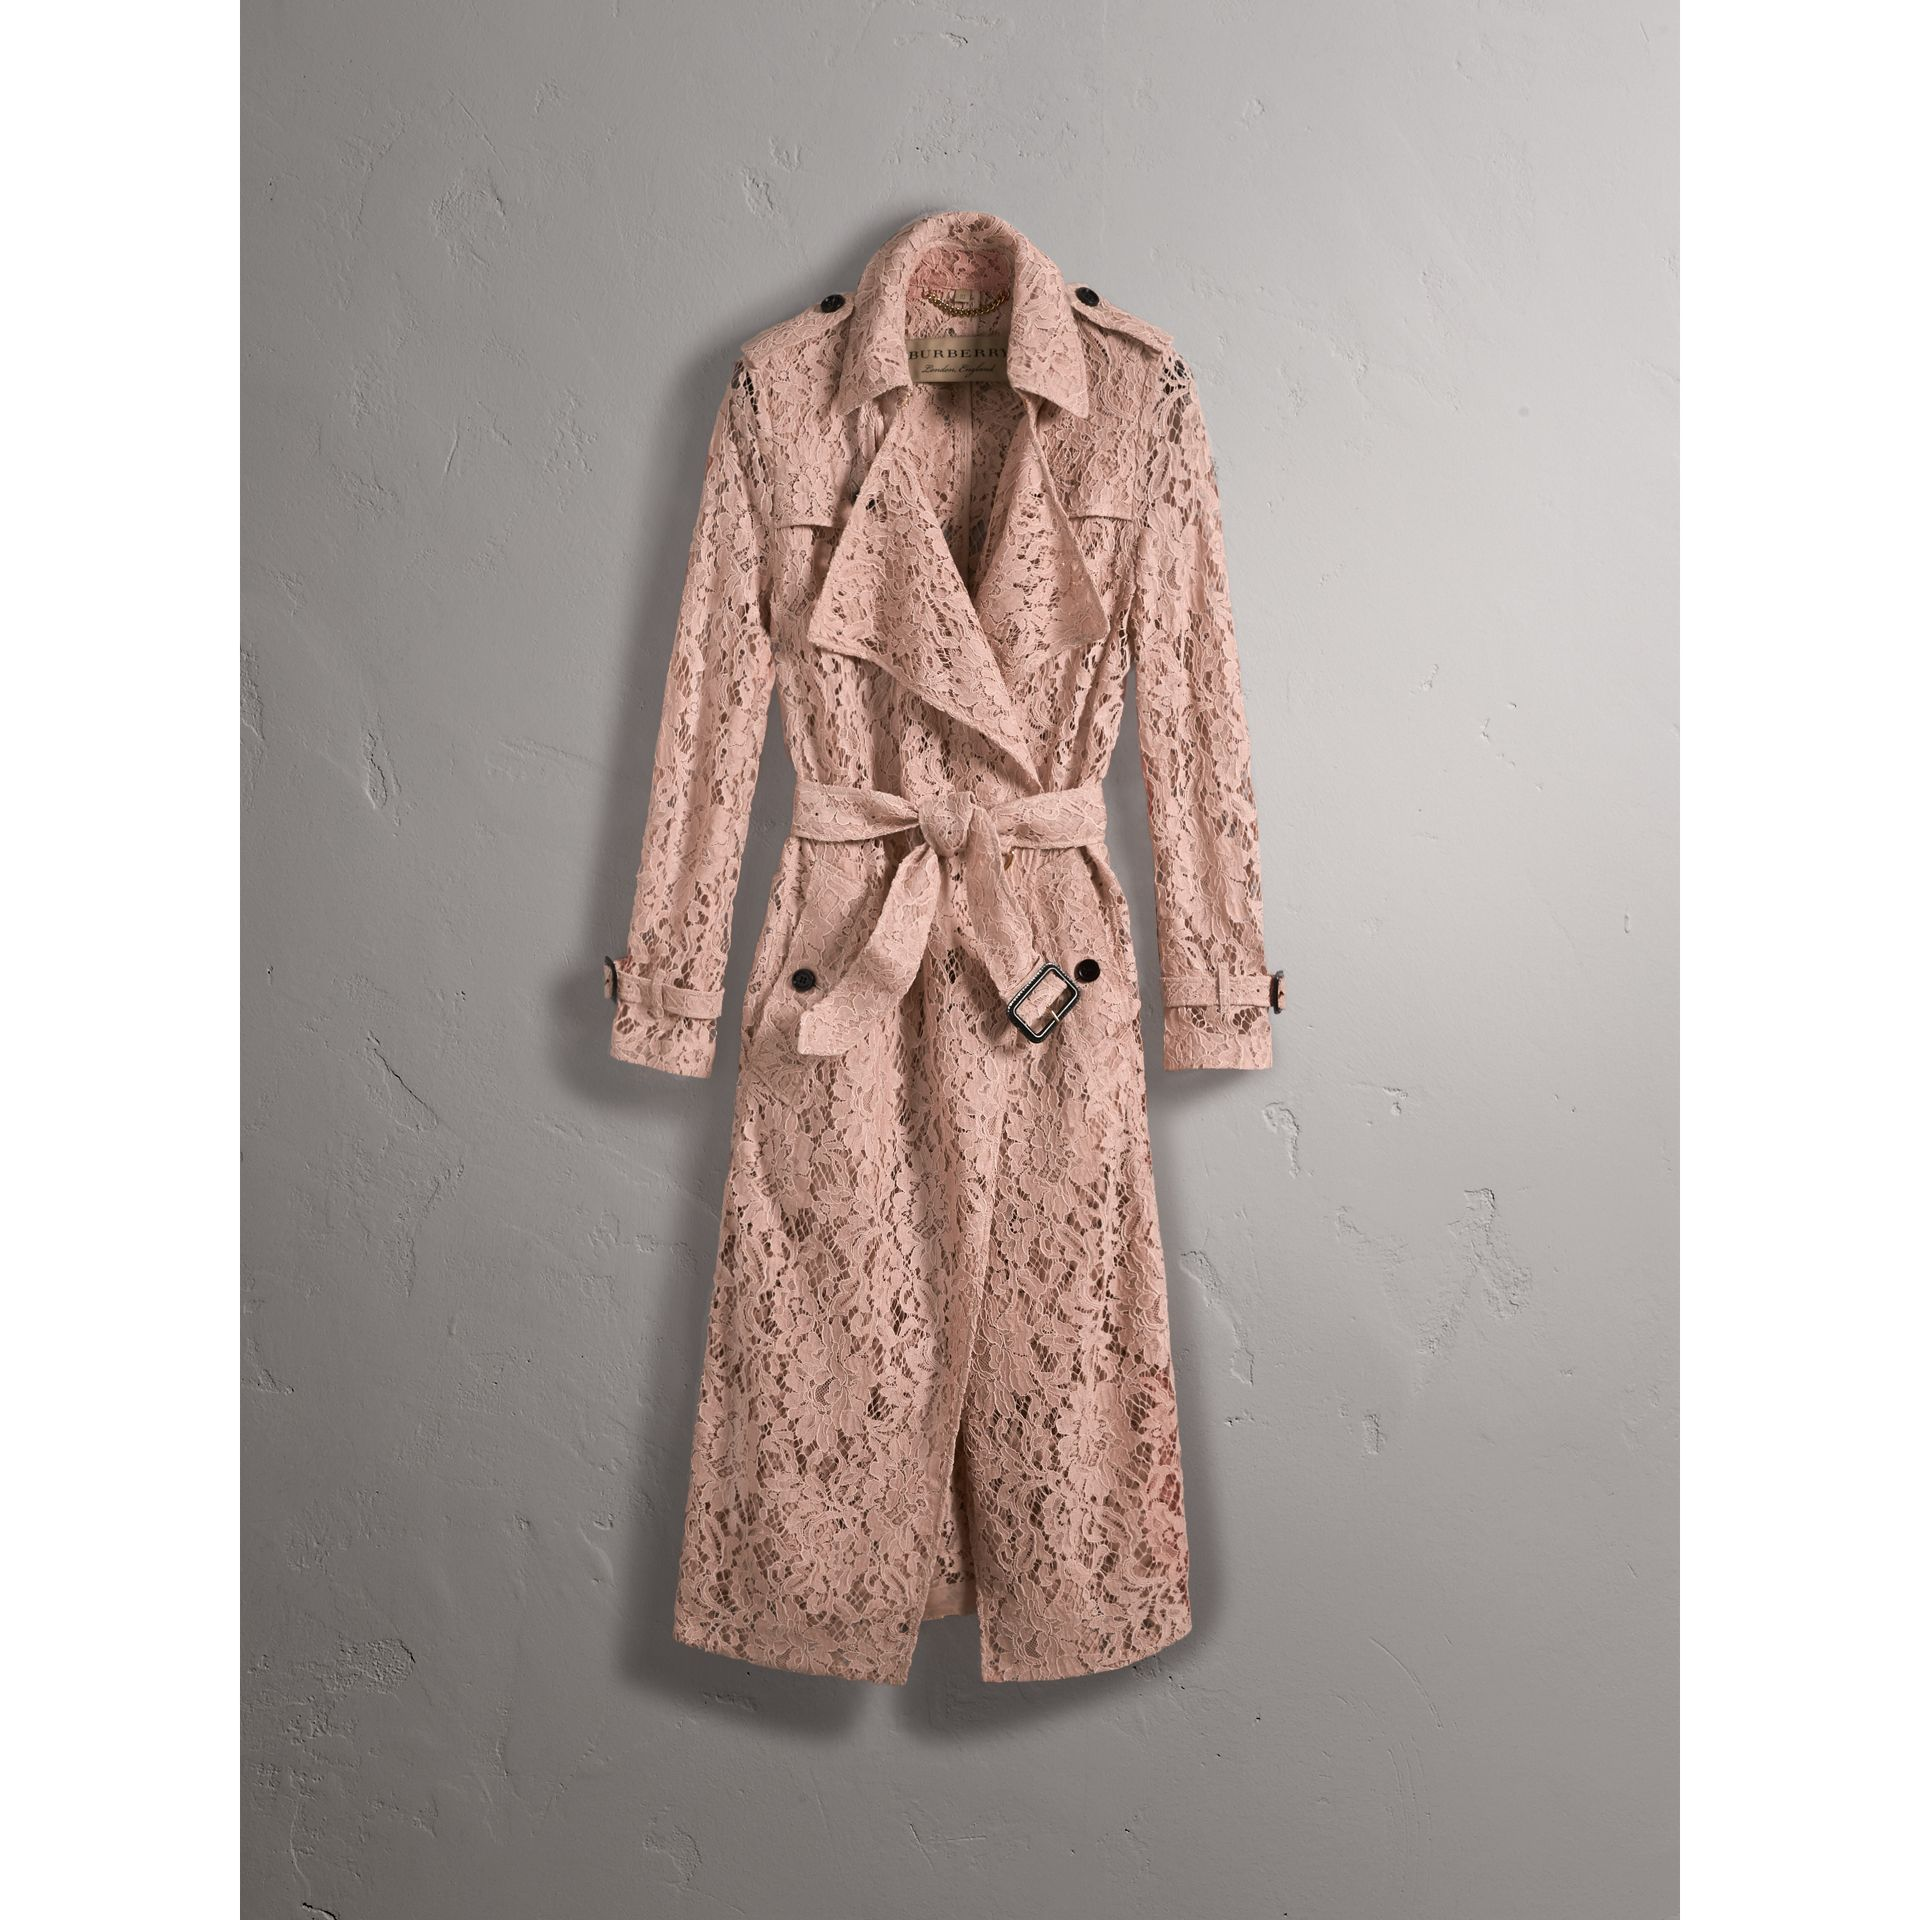 Macramé Lace Trench Coat in Pale Pink - Women | Burberry Singapore - gallery image 4